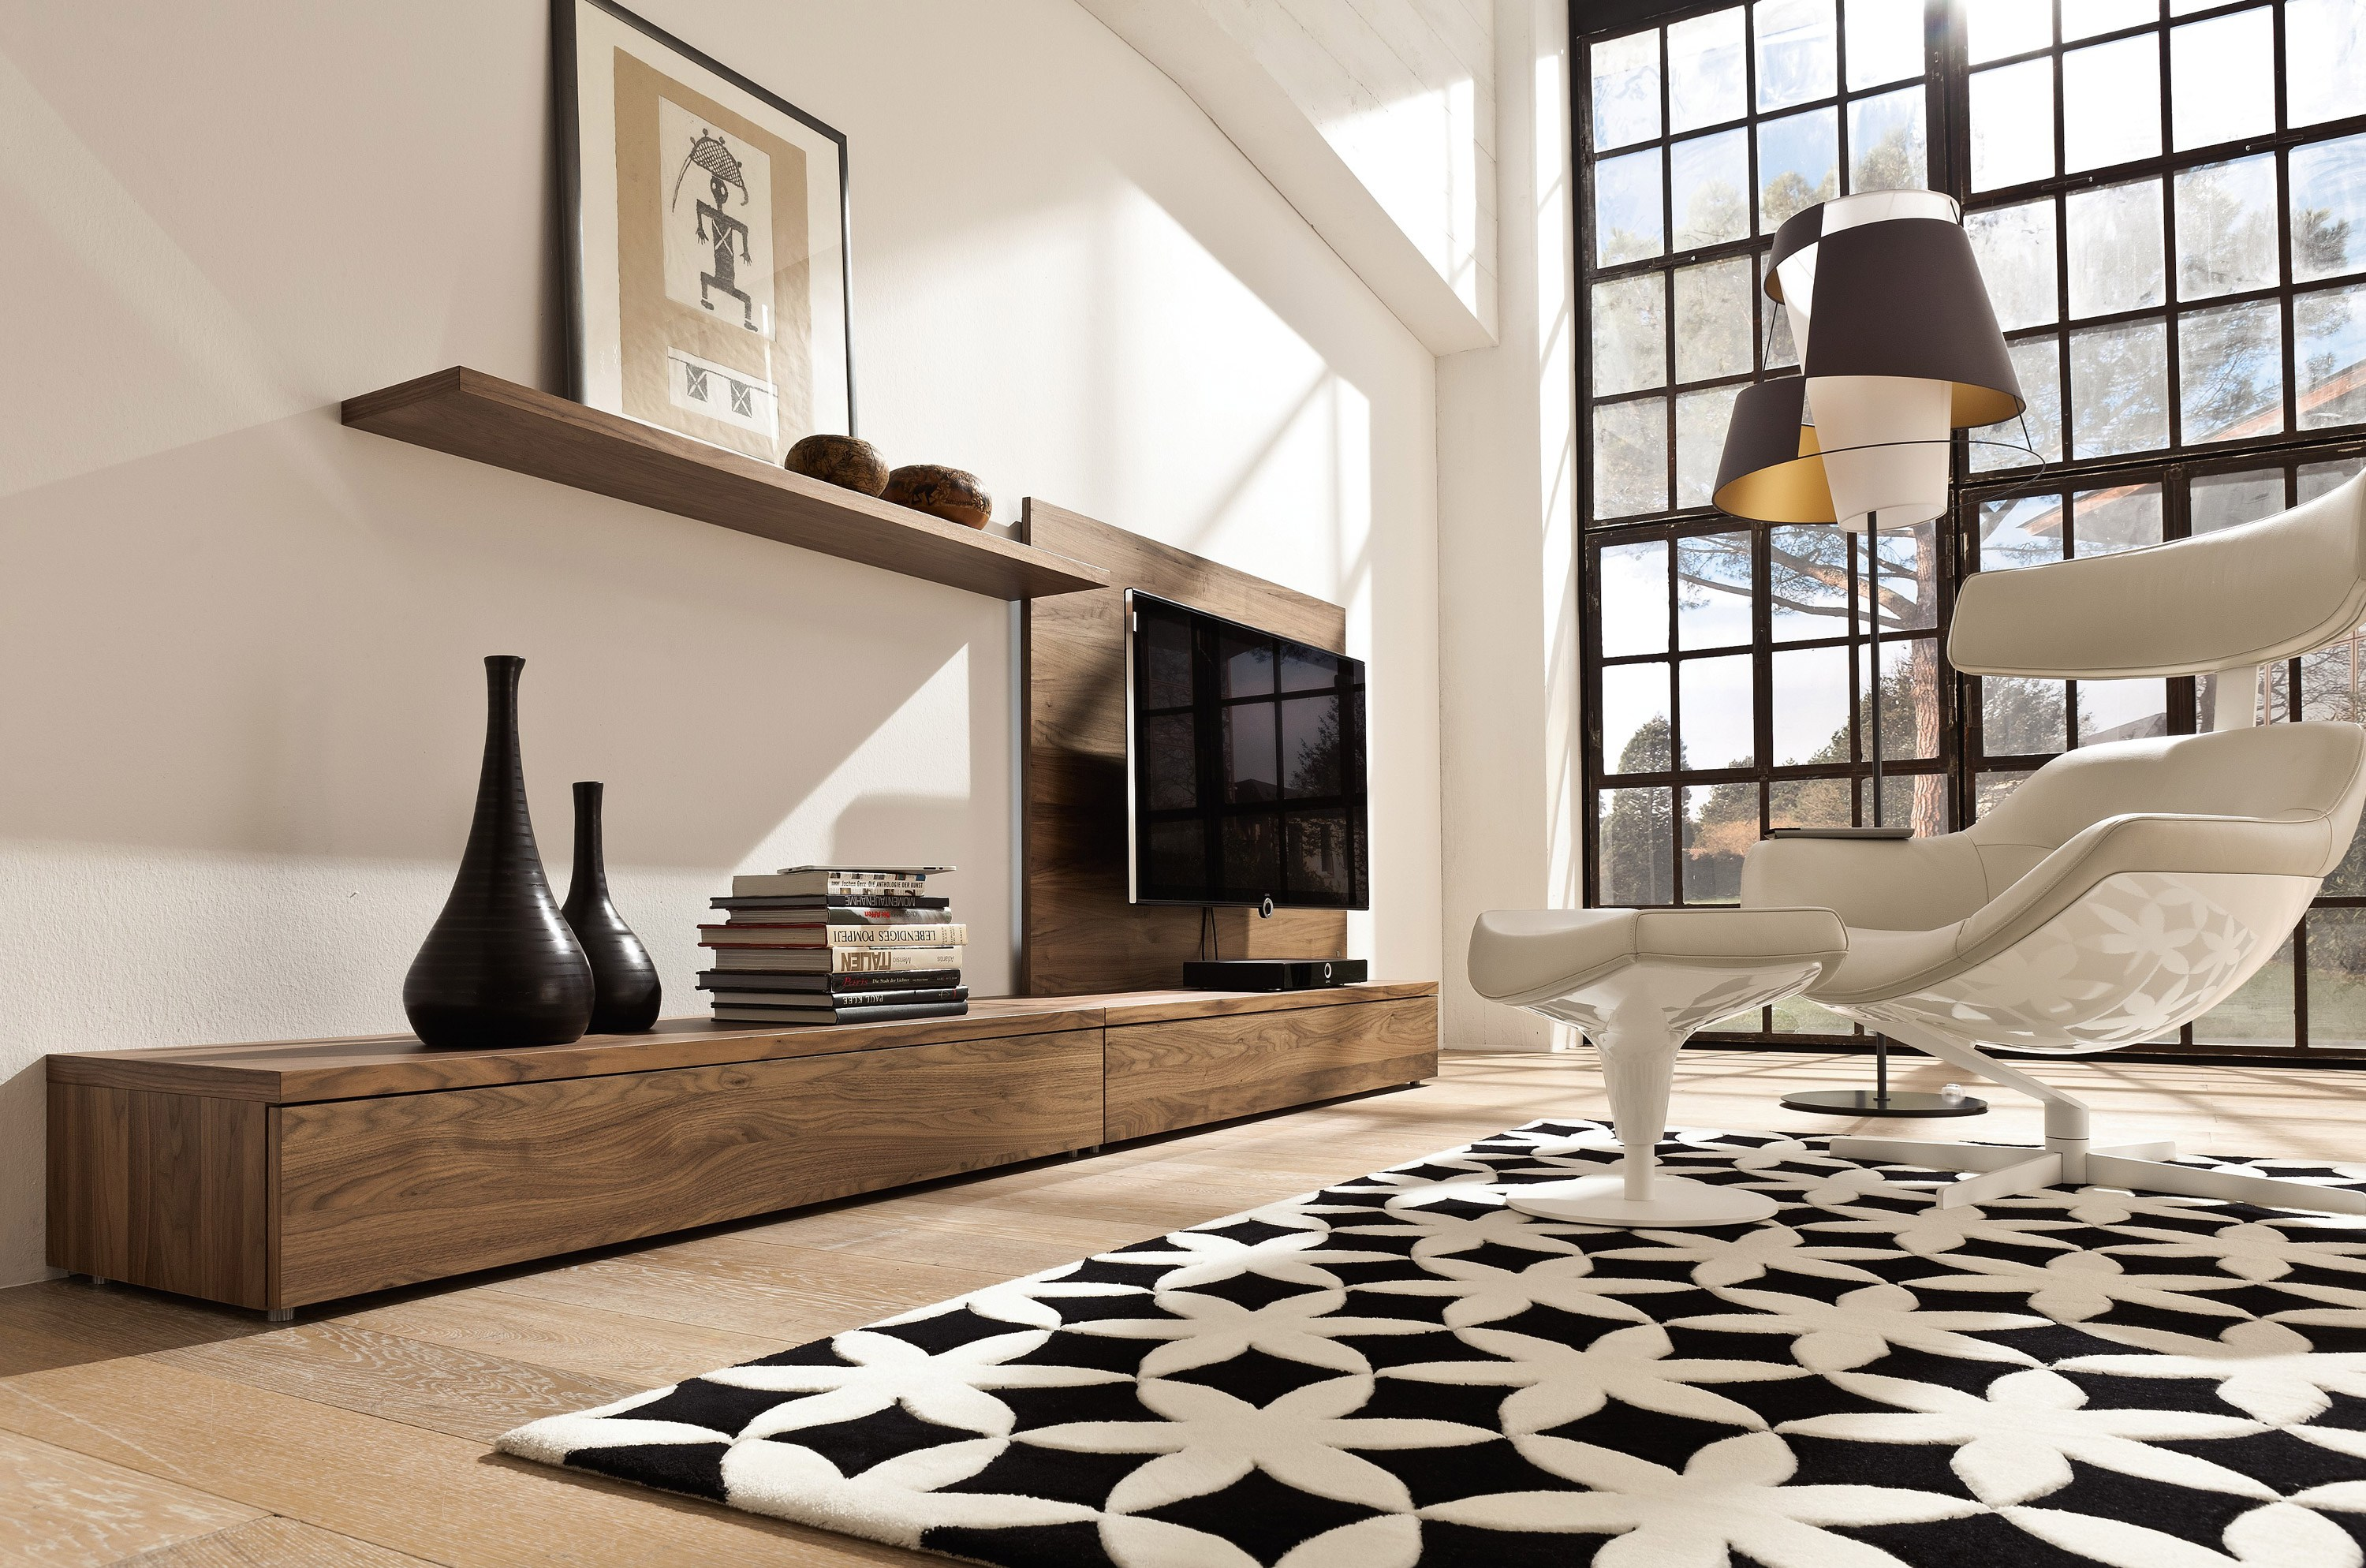 xelo b cherregal m bel design idee f r sie. Black Bedroom Furniture Sets. Home Design Ideas